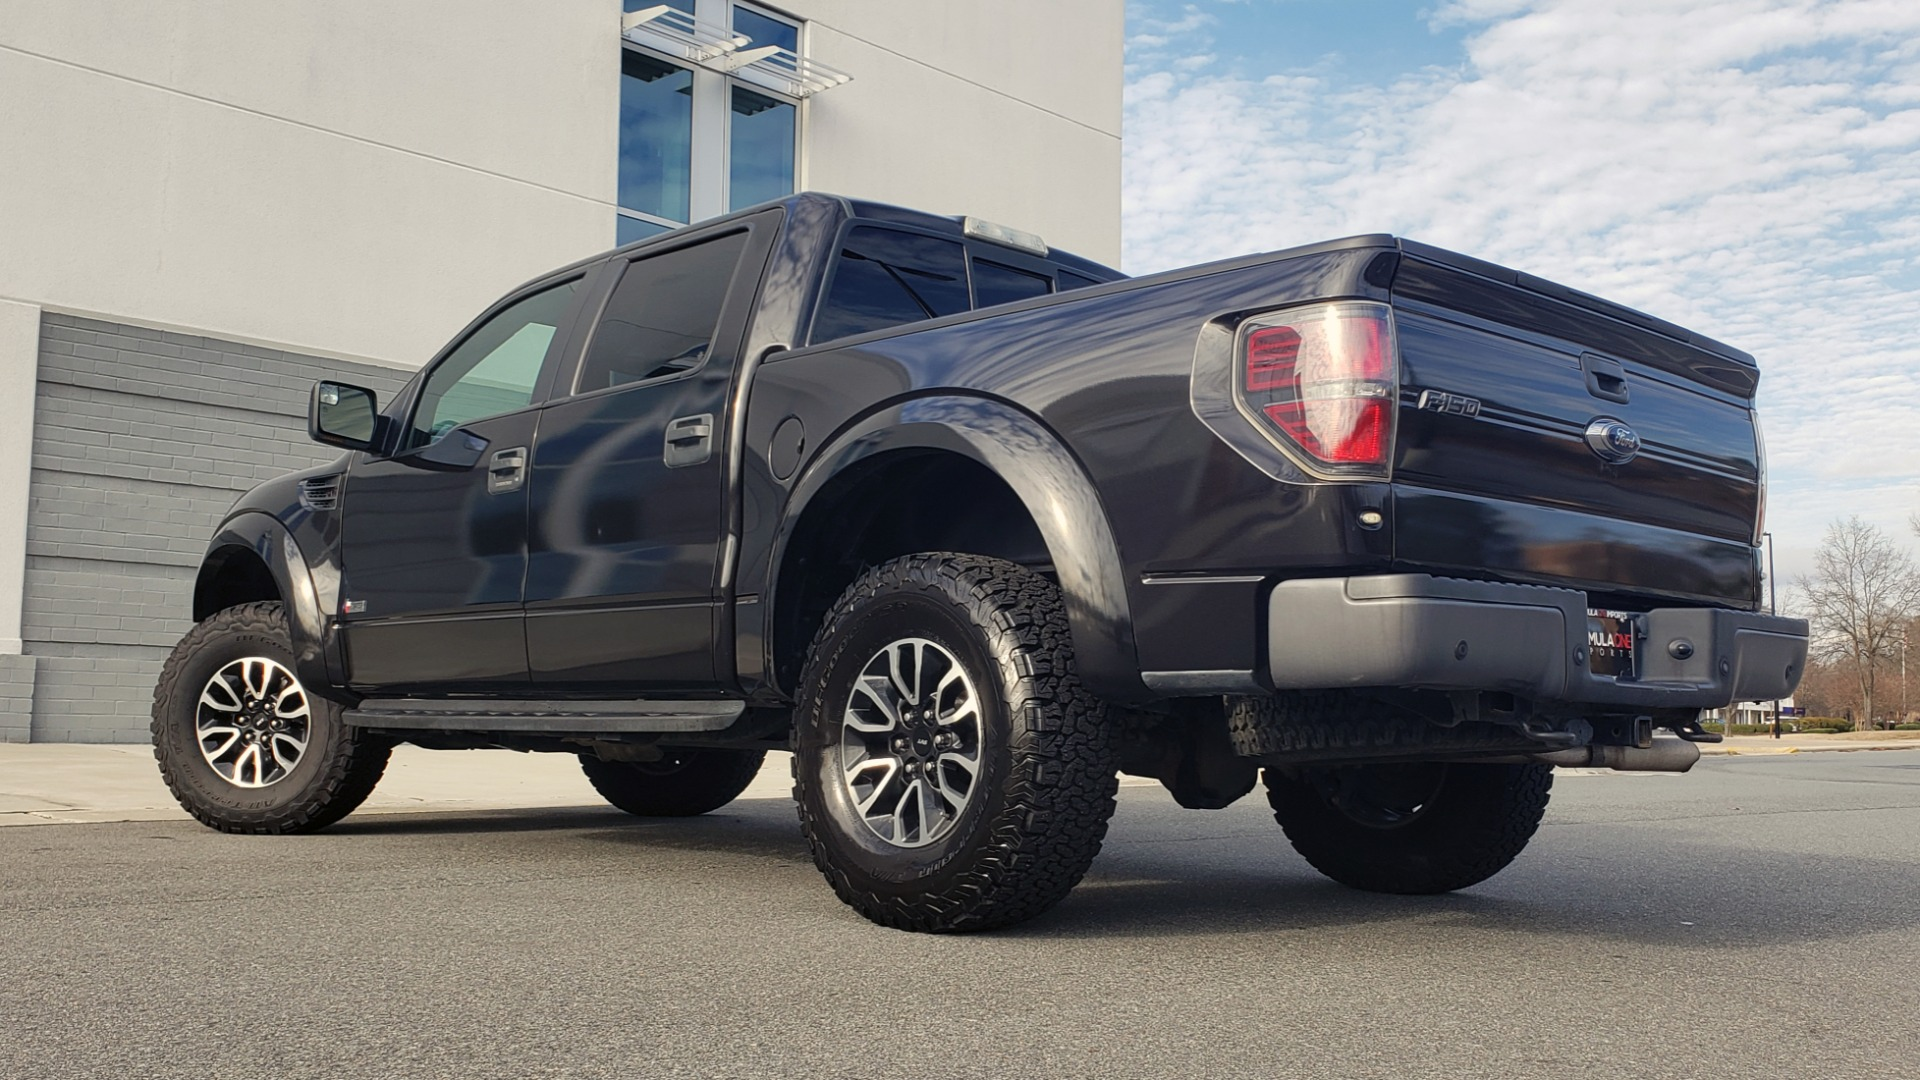 Used 2013 Ford F-150 SVT RAPTOR 4X4 SUPERCREW / 6.2L V8 / 6-SPD AUTO / NAV / LUX PKG for sale Sold at Formula Imports in Charlotte NC 28227 2